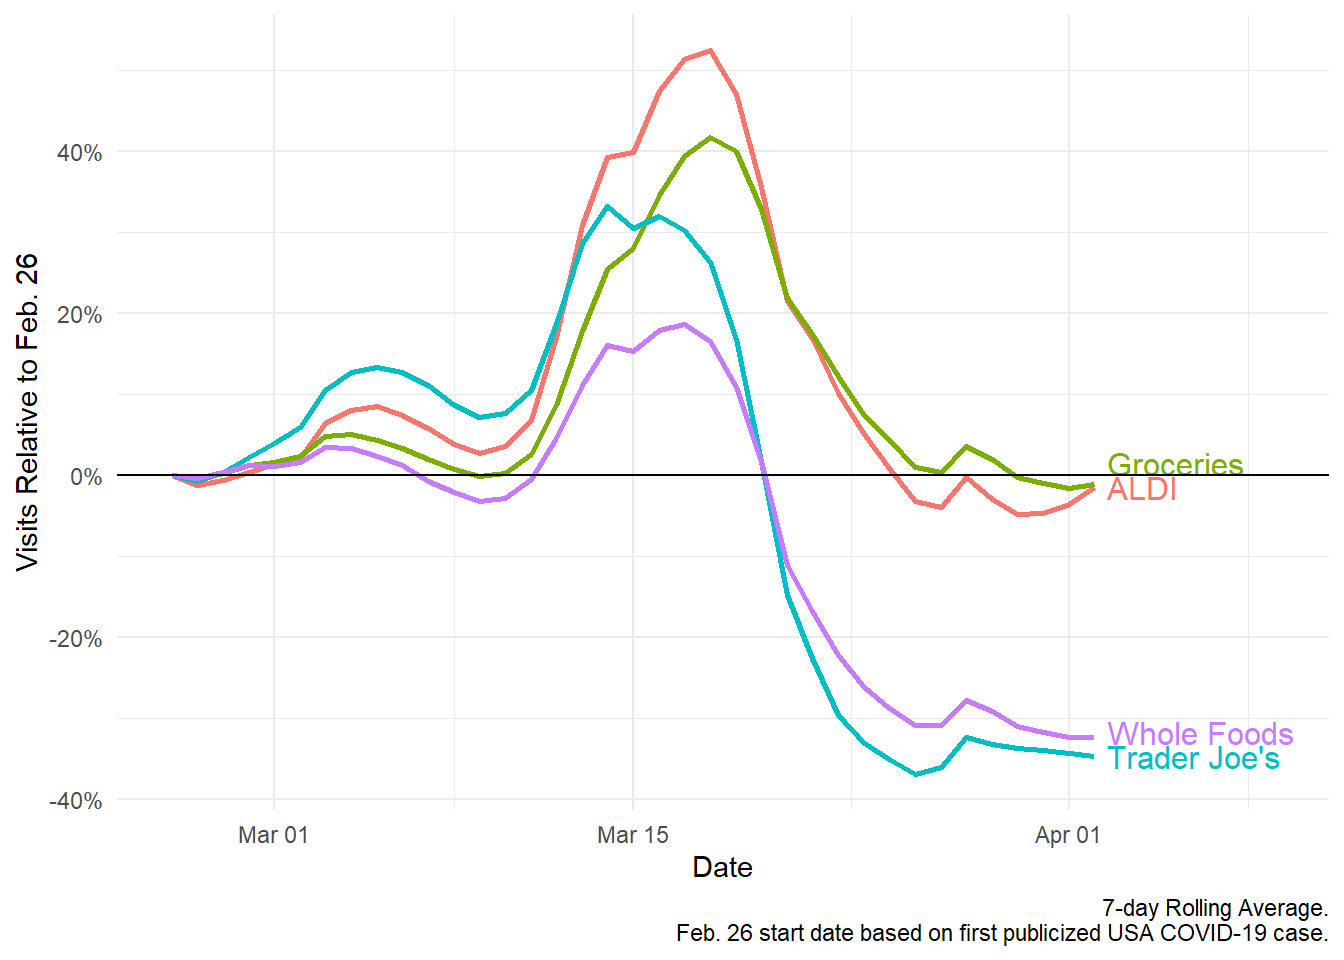 With the advent of COVID-19 in the US, we saw a steep rise and subsequent plummet in foot traffic brick-and-mortar grocery chains.